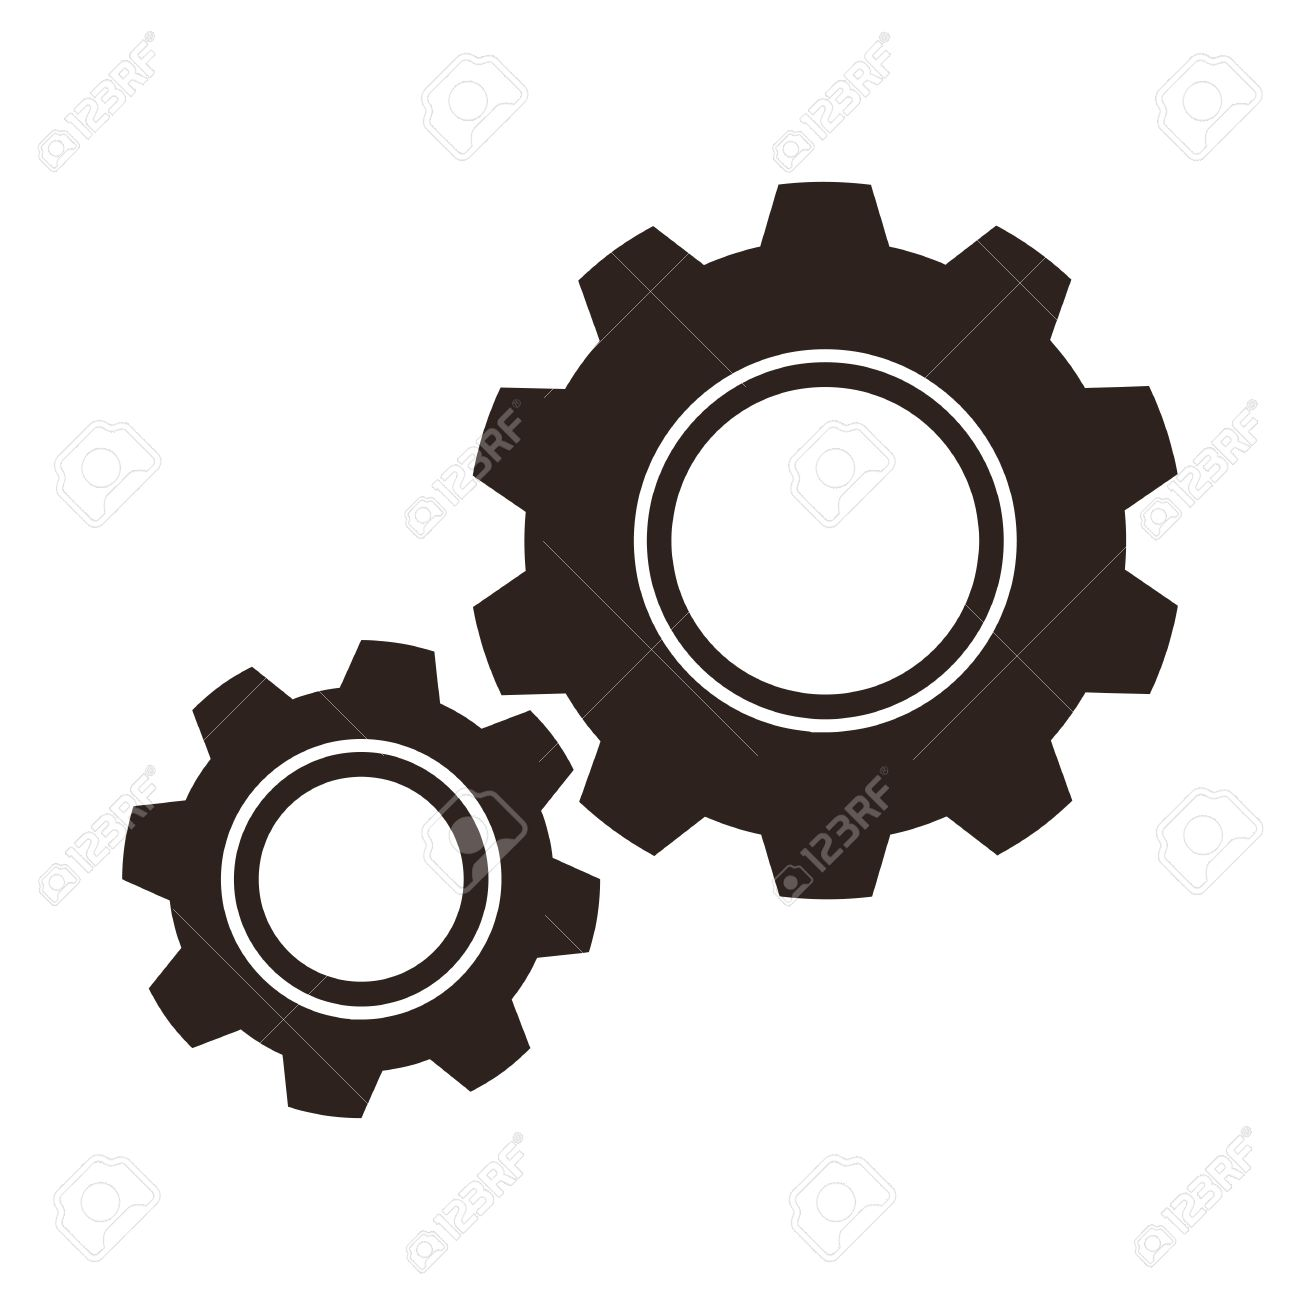 Gears cogs icon isolated on white background.